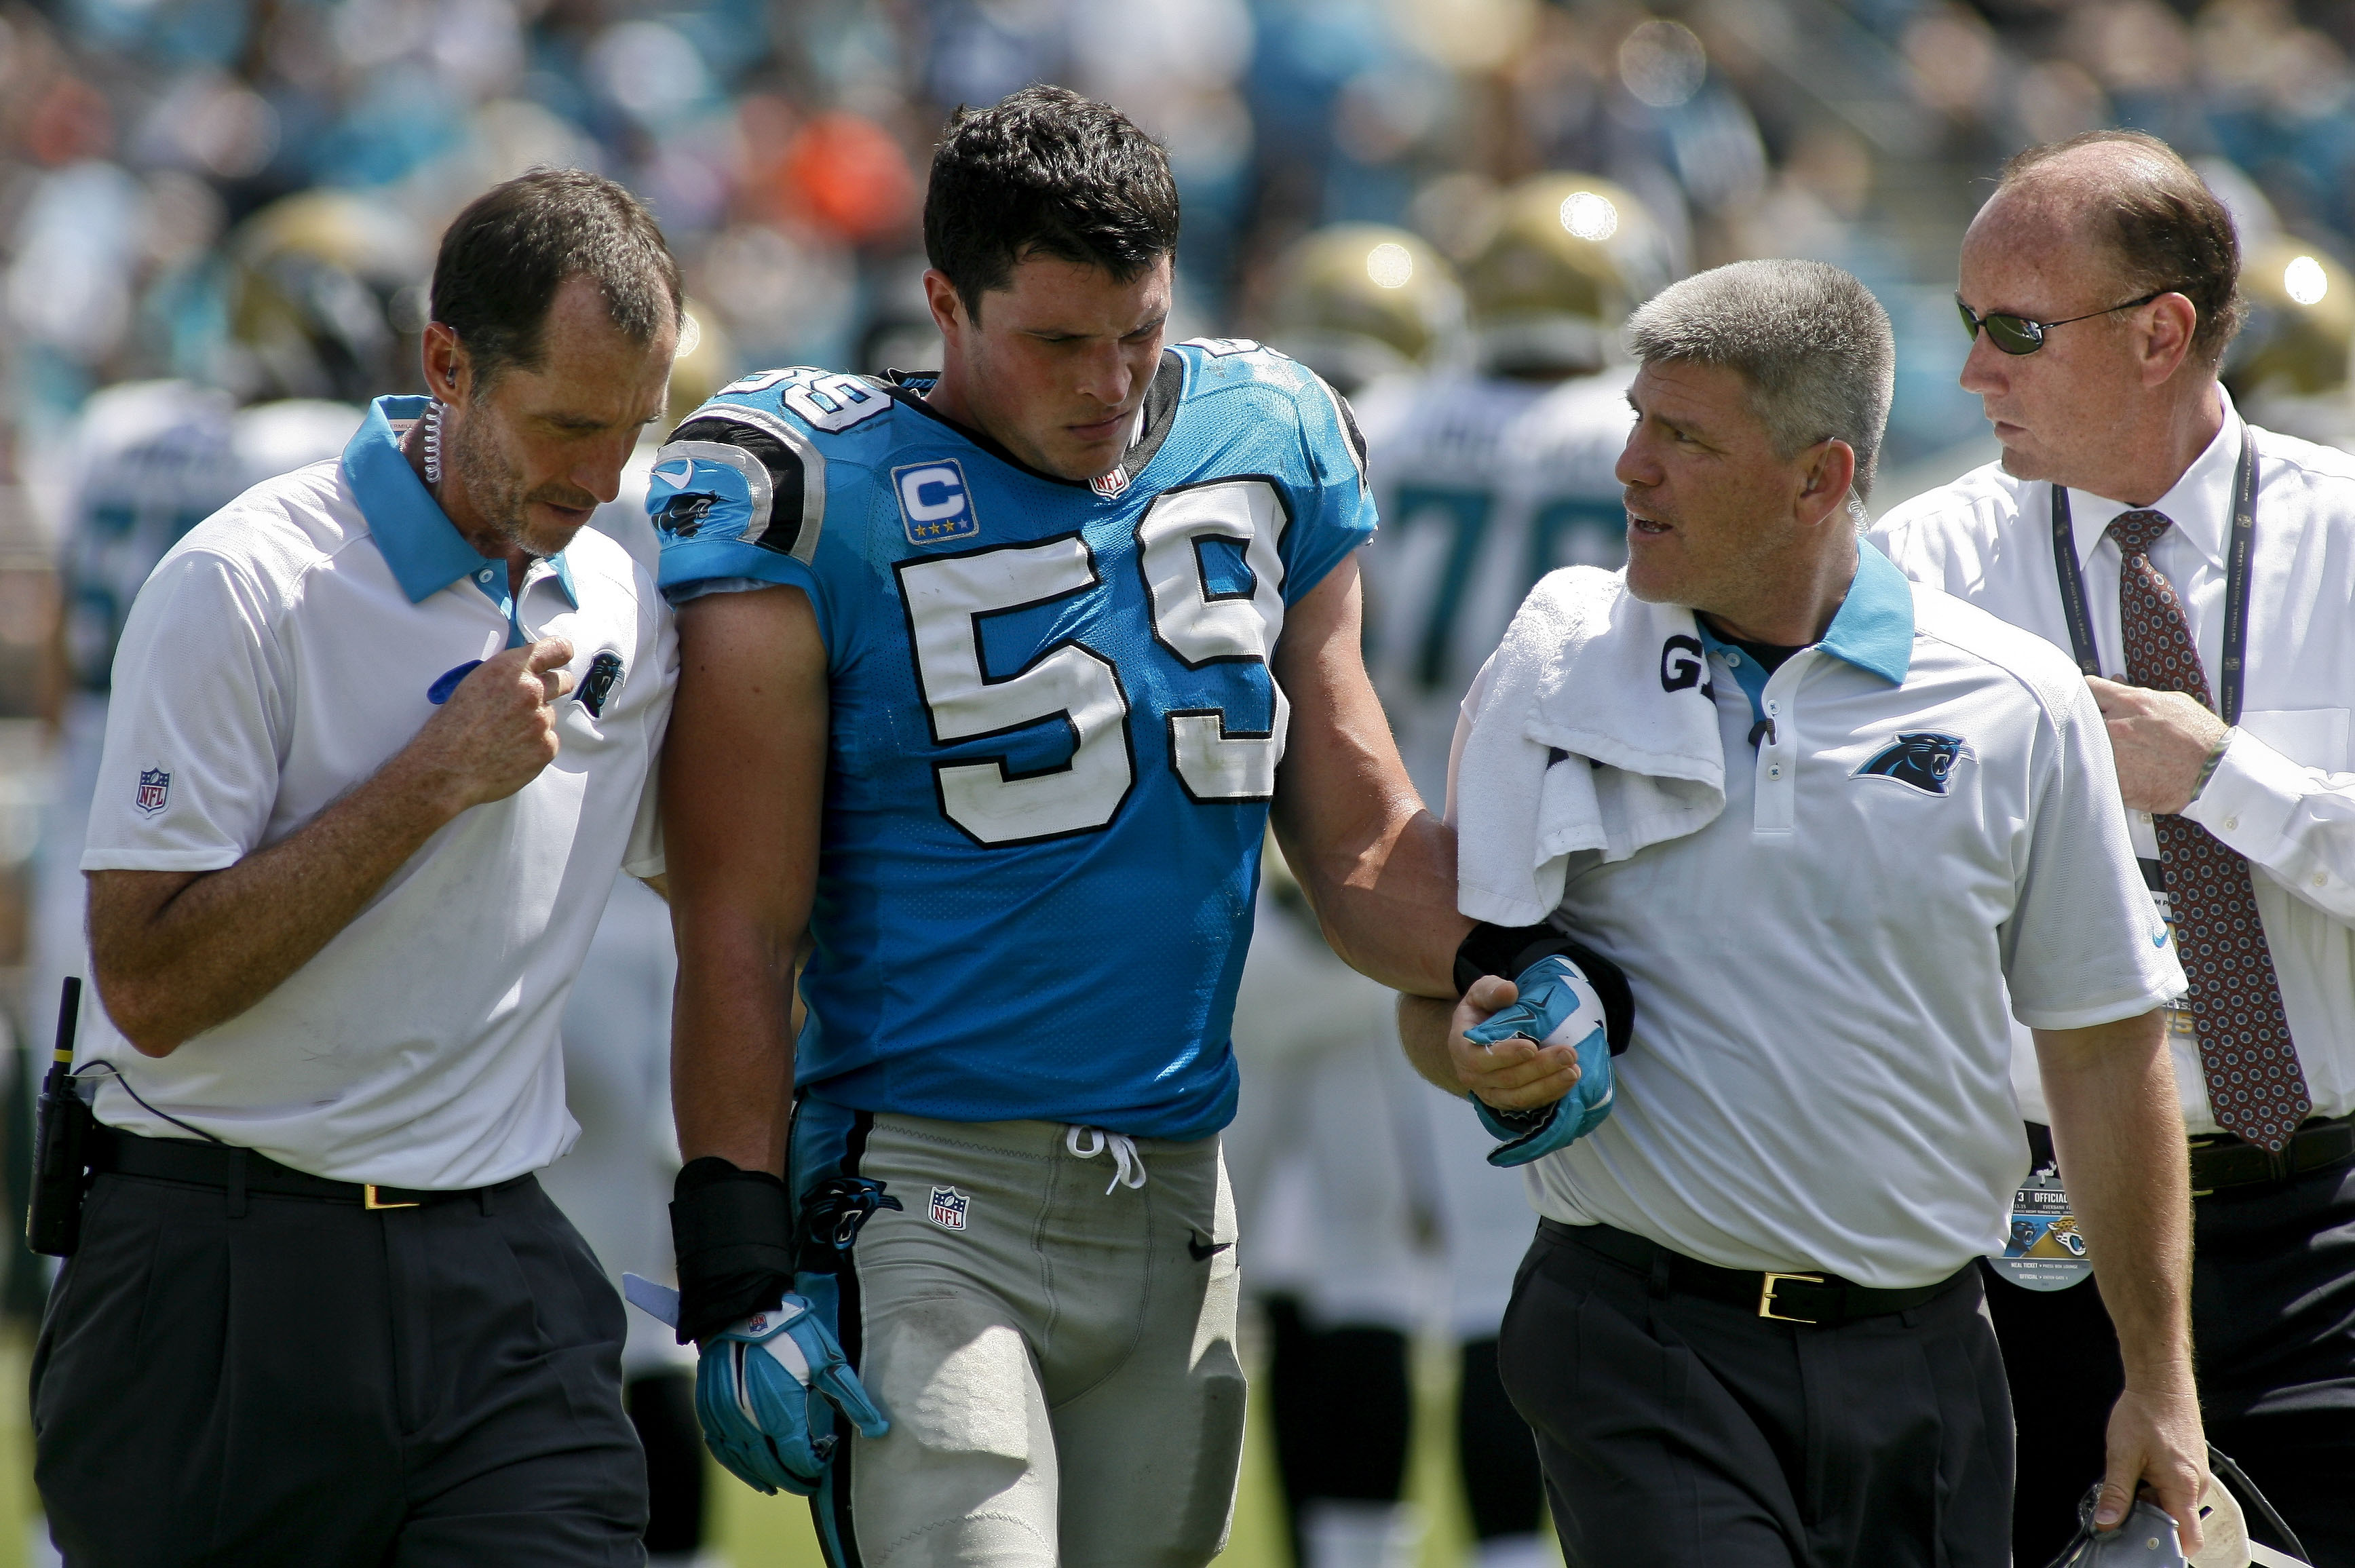 Luke Kuechly has officially been ruled OUT for Houston's week two matchup with Carolina